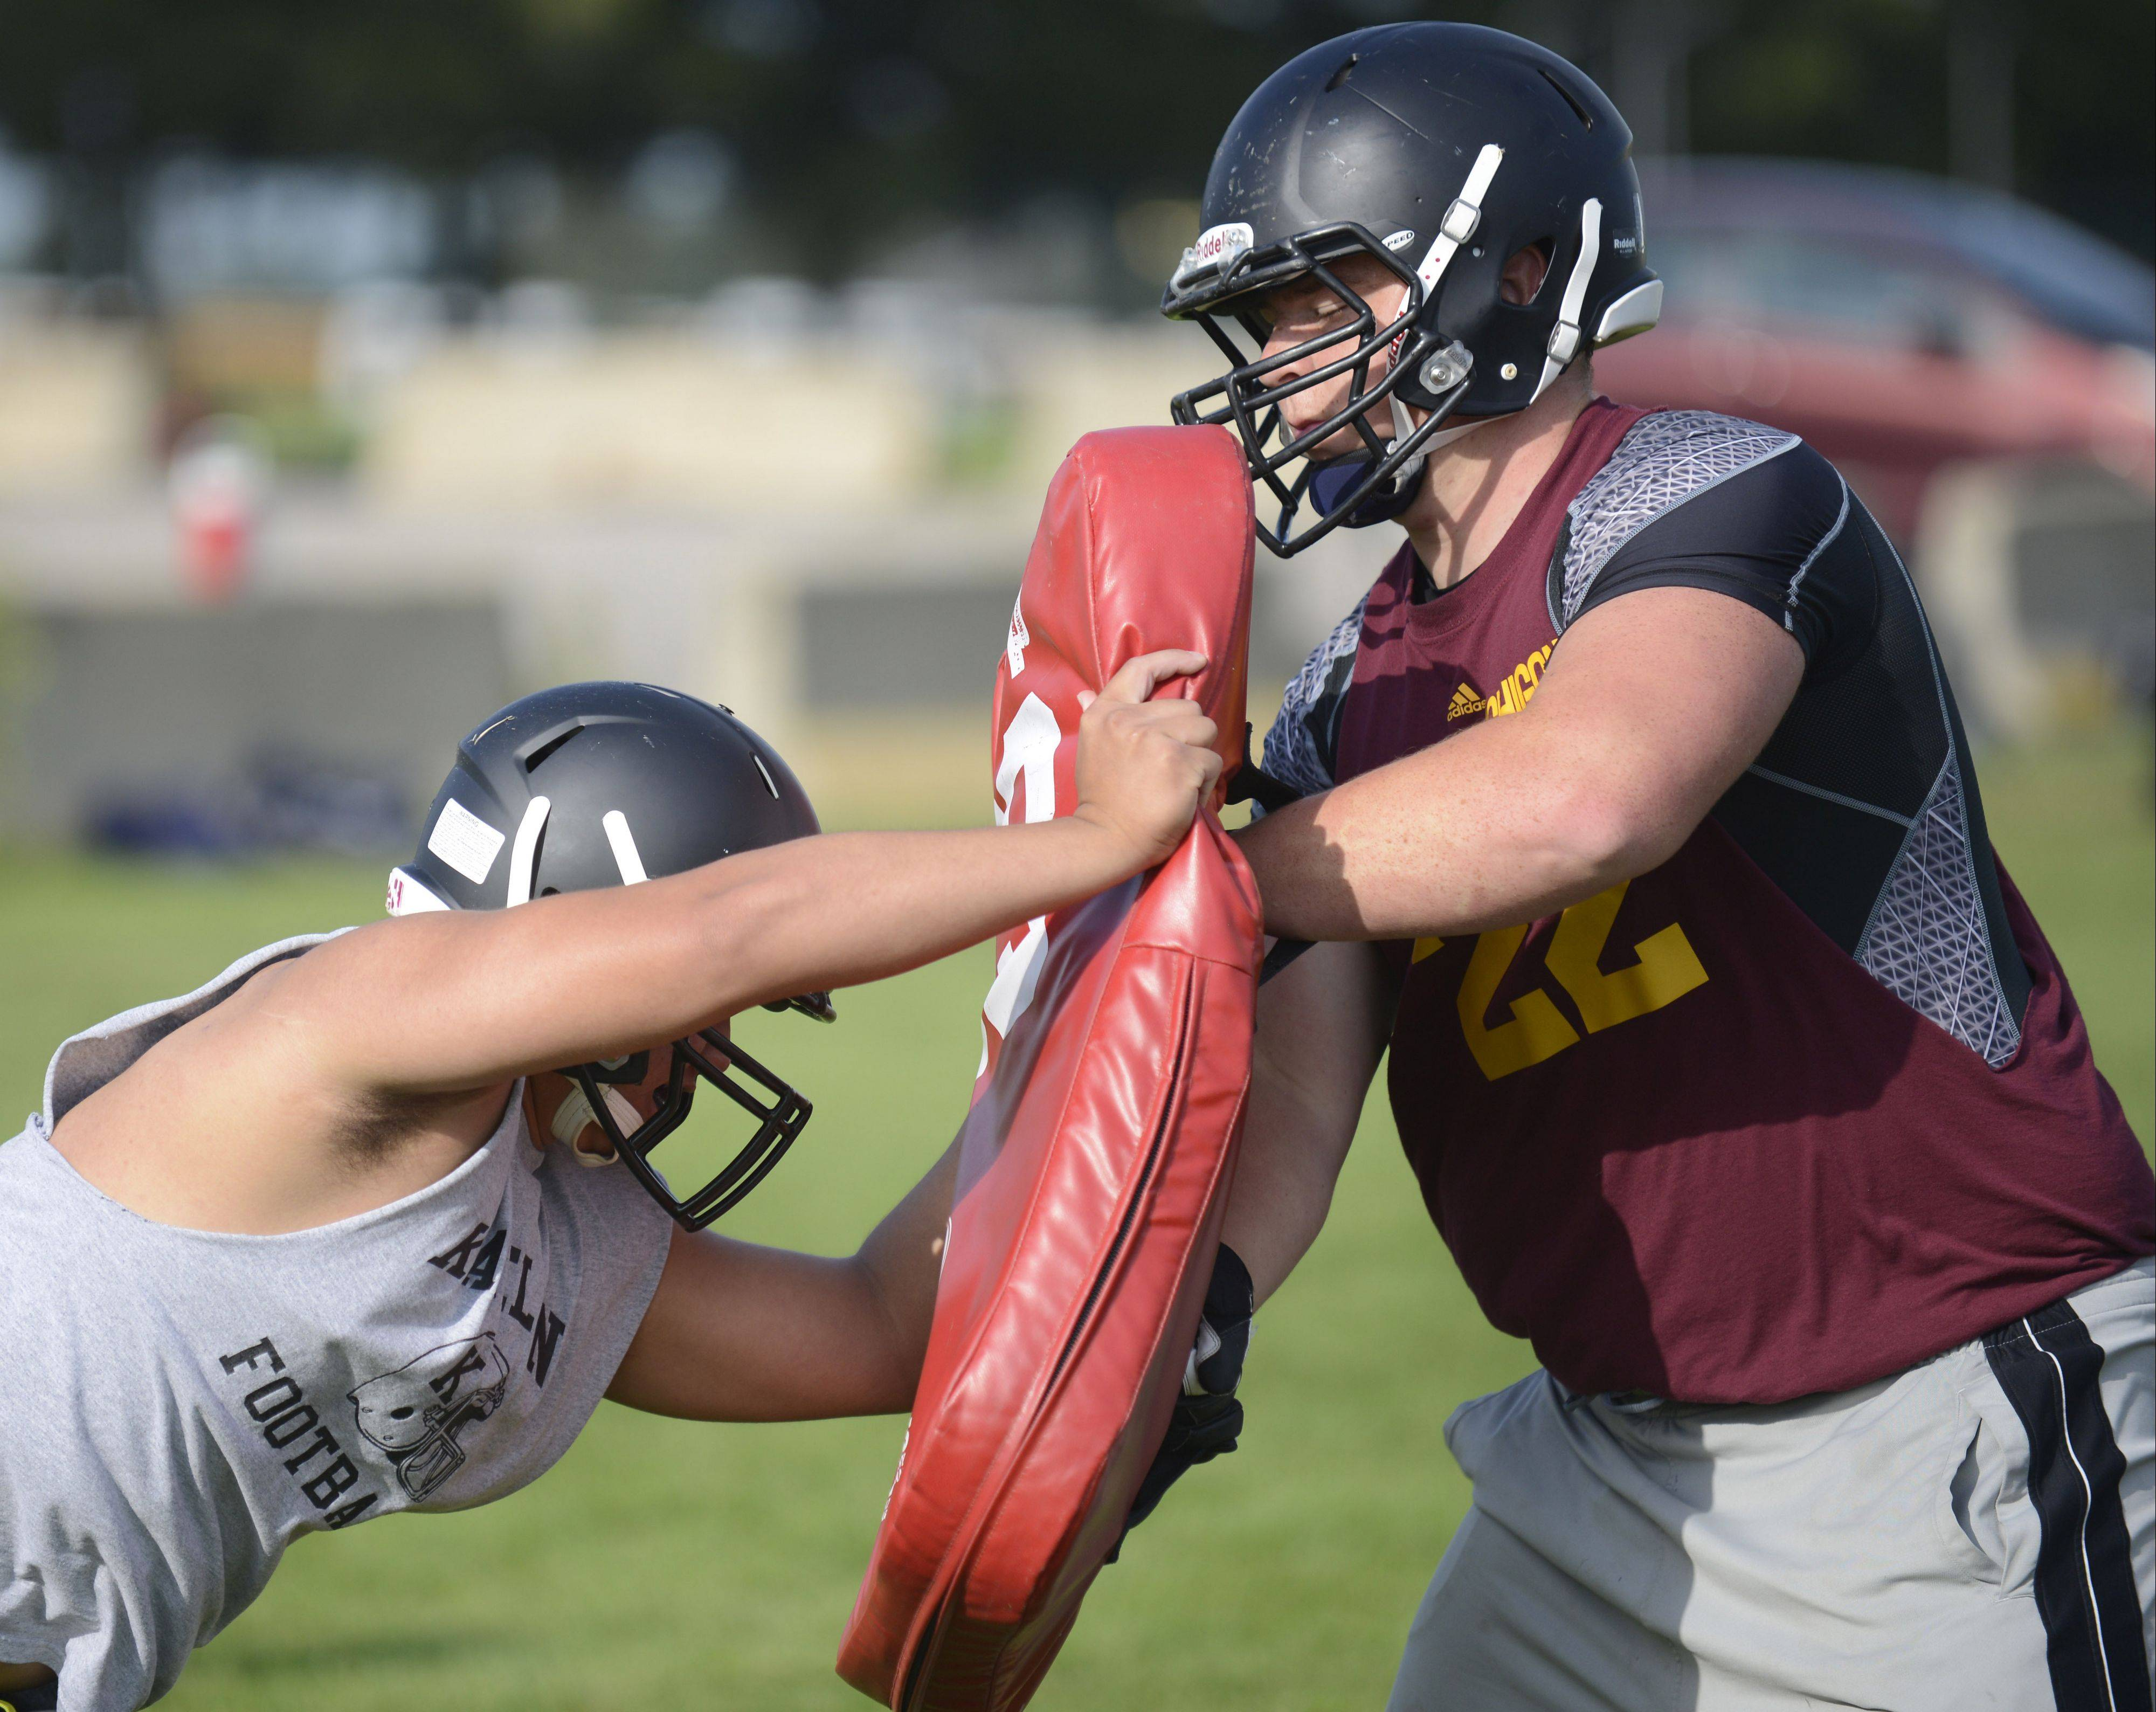 Bryan Endrenal, left, battles Joe Komel during a Kaneland practice on Aug. 15. Komel is part of an experienced offensive line.